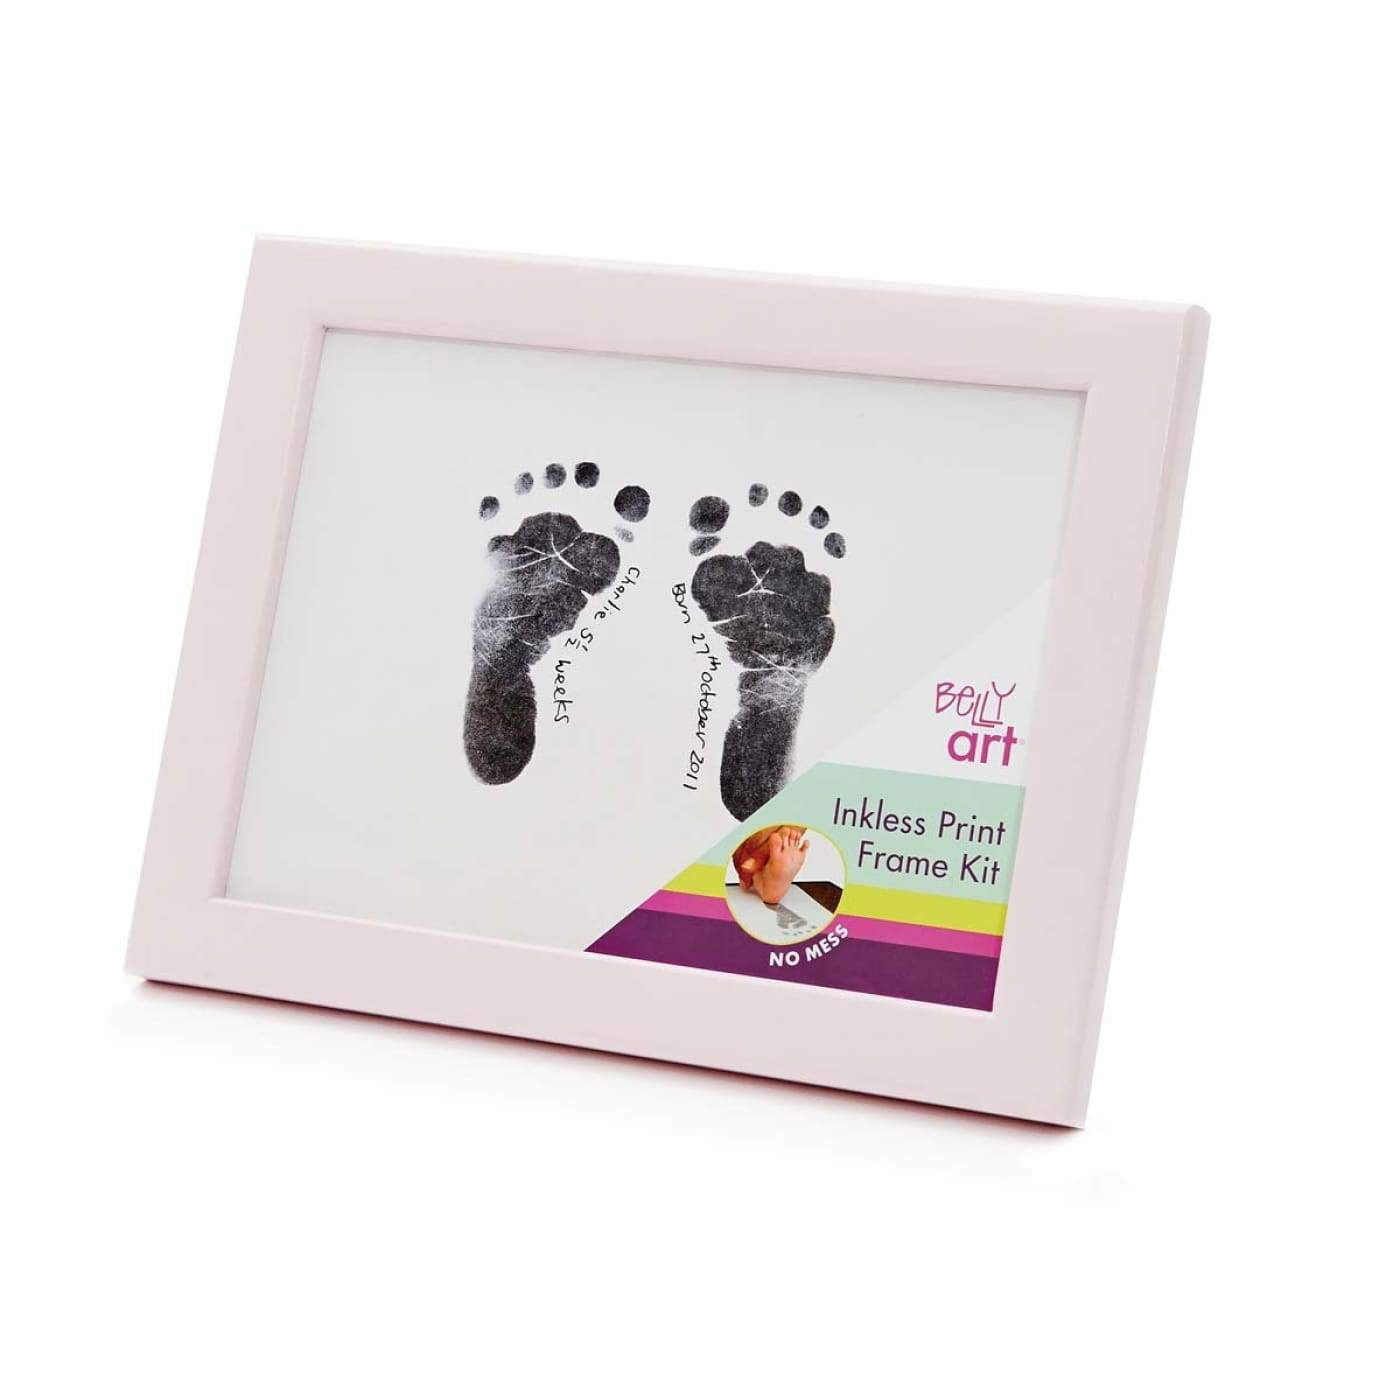 BABY MADE Inkless Print Frame Kit PINK - GIFTWARE - KEEPSAKES